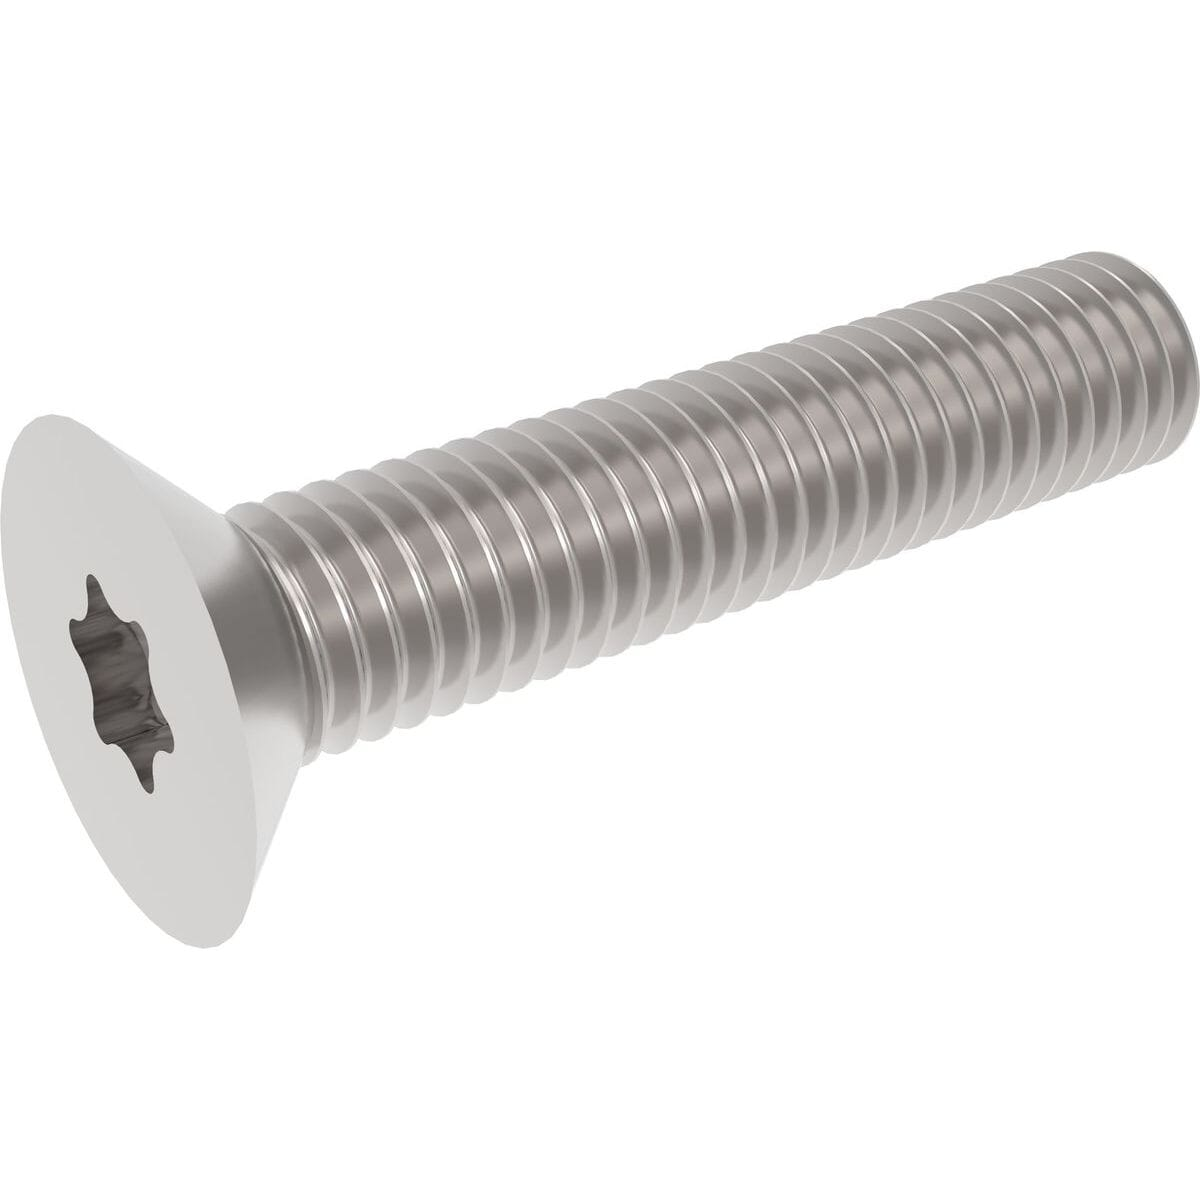 M5 x 55mm Torx Countersunk Screws (ISO 14581) - Stainless Steel (A2)